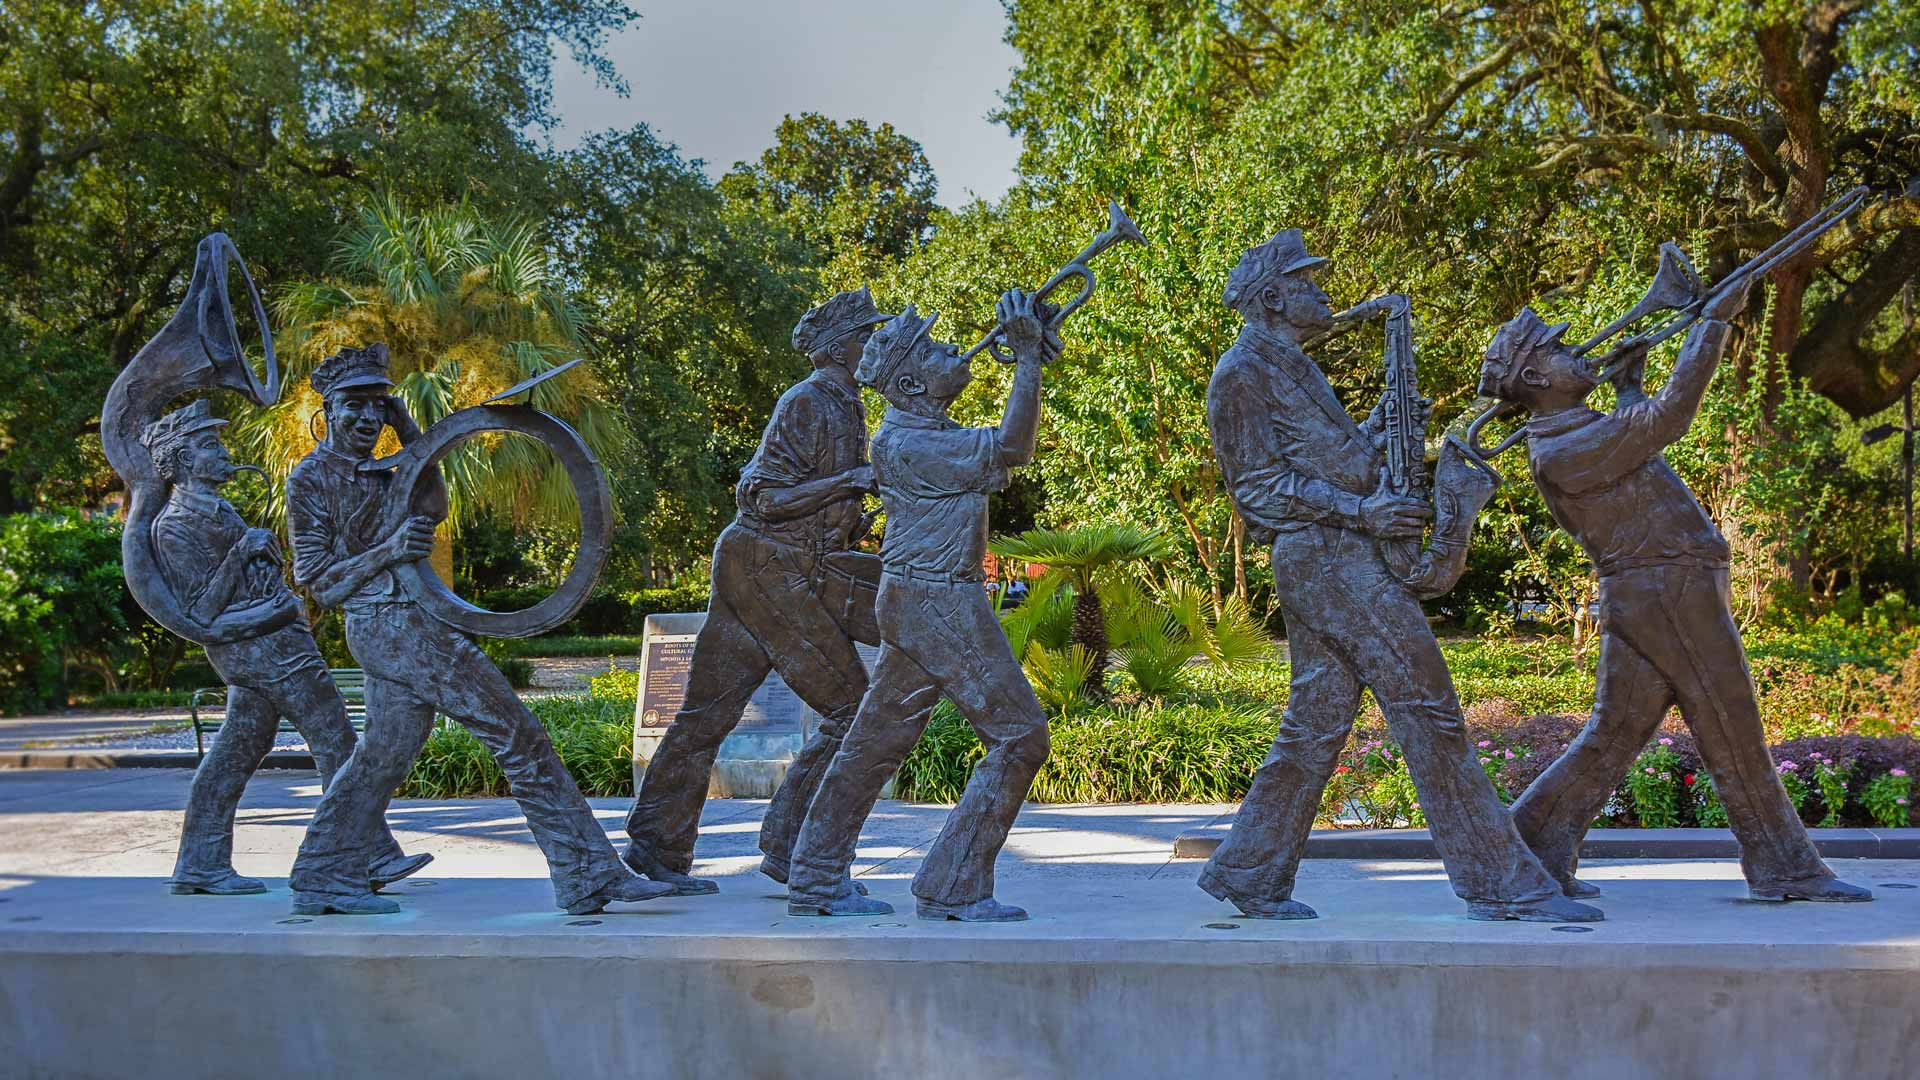 The Roots of Music Cultural Sculpture Garden in Louis Armstrong Park, New Orleans, LA (© jejim120/Alamy)(Bing United States)